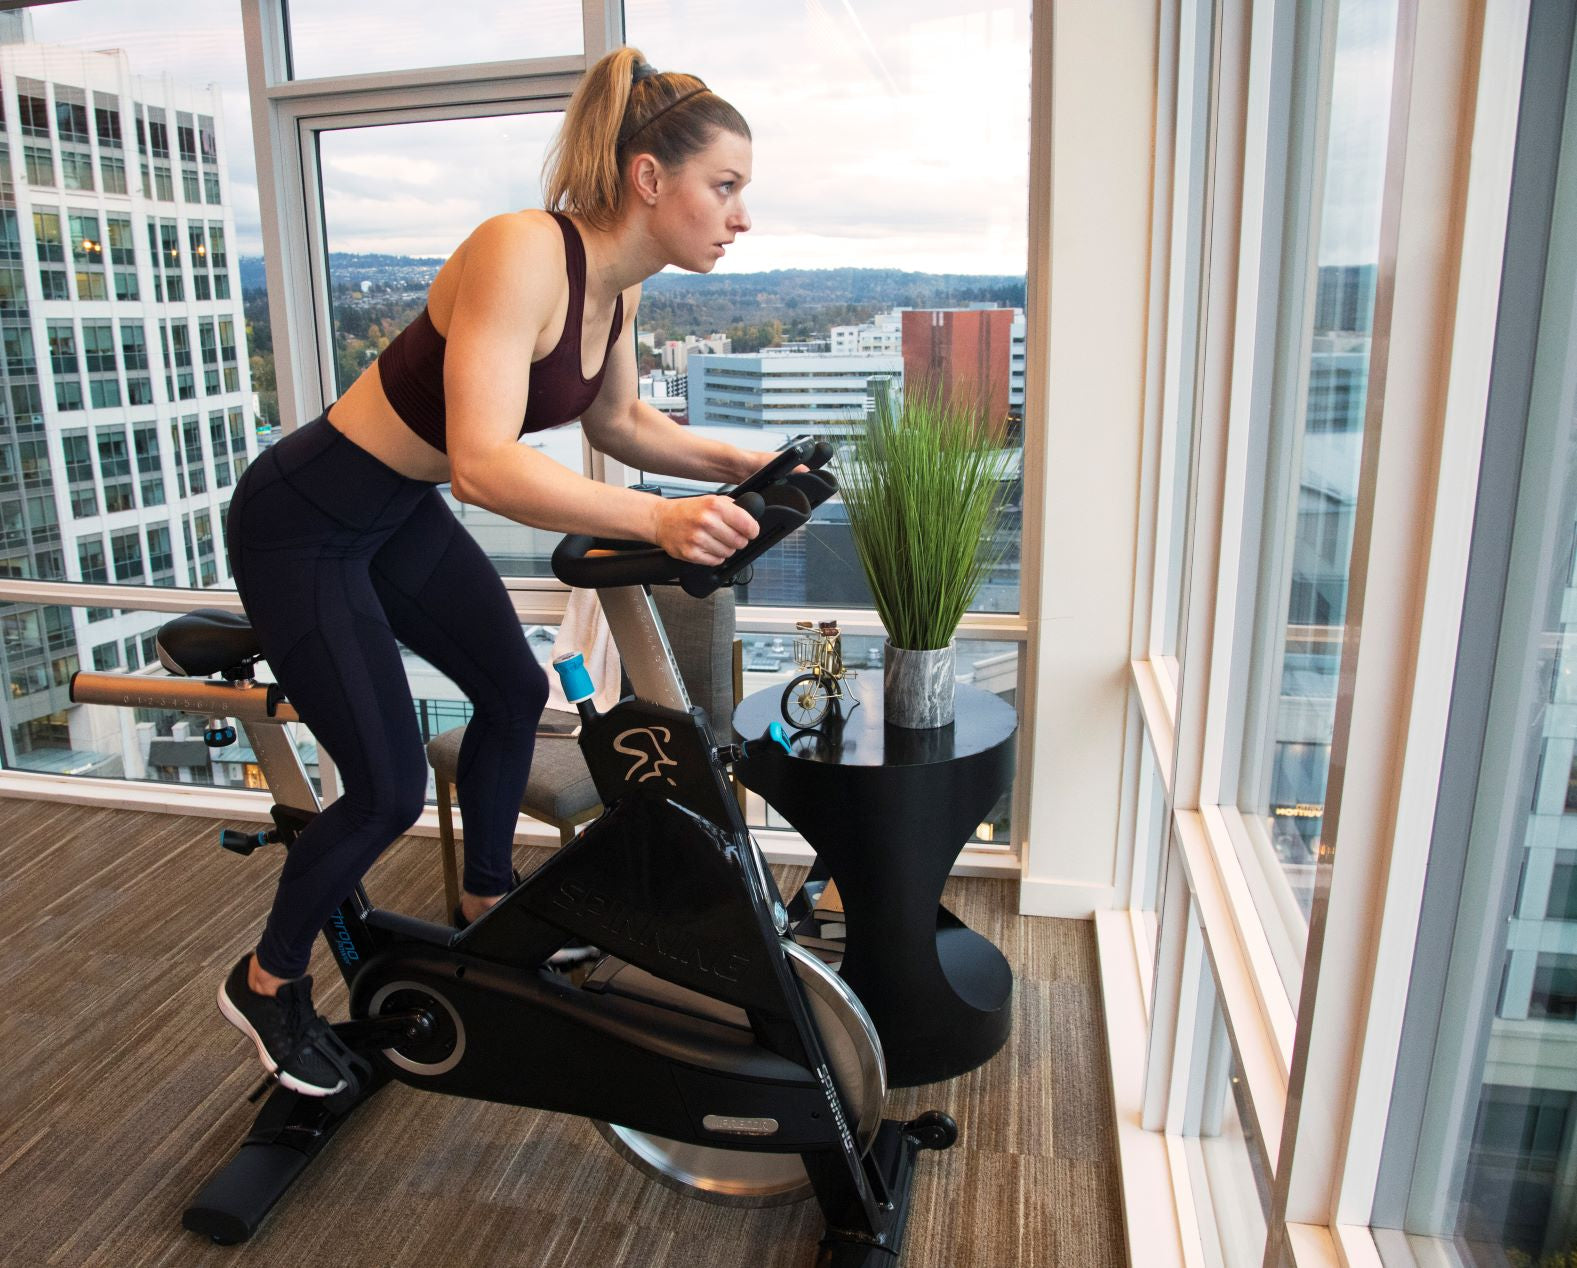 Female spinning on her Precor Spin bike at home